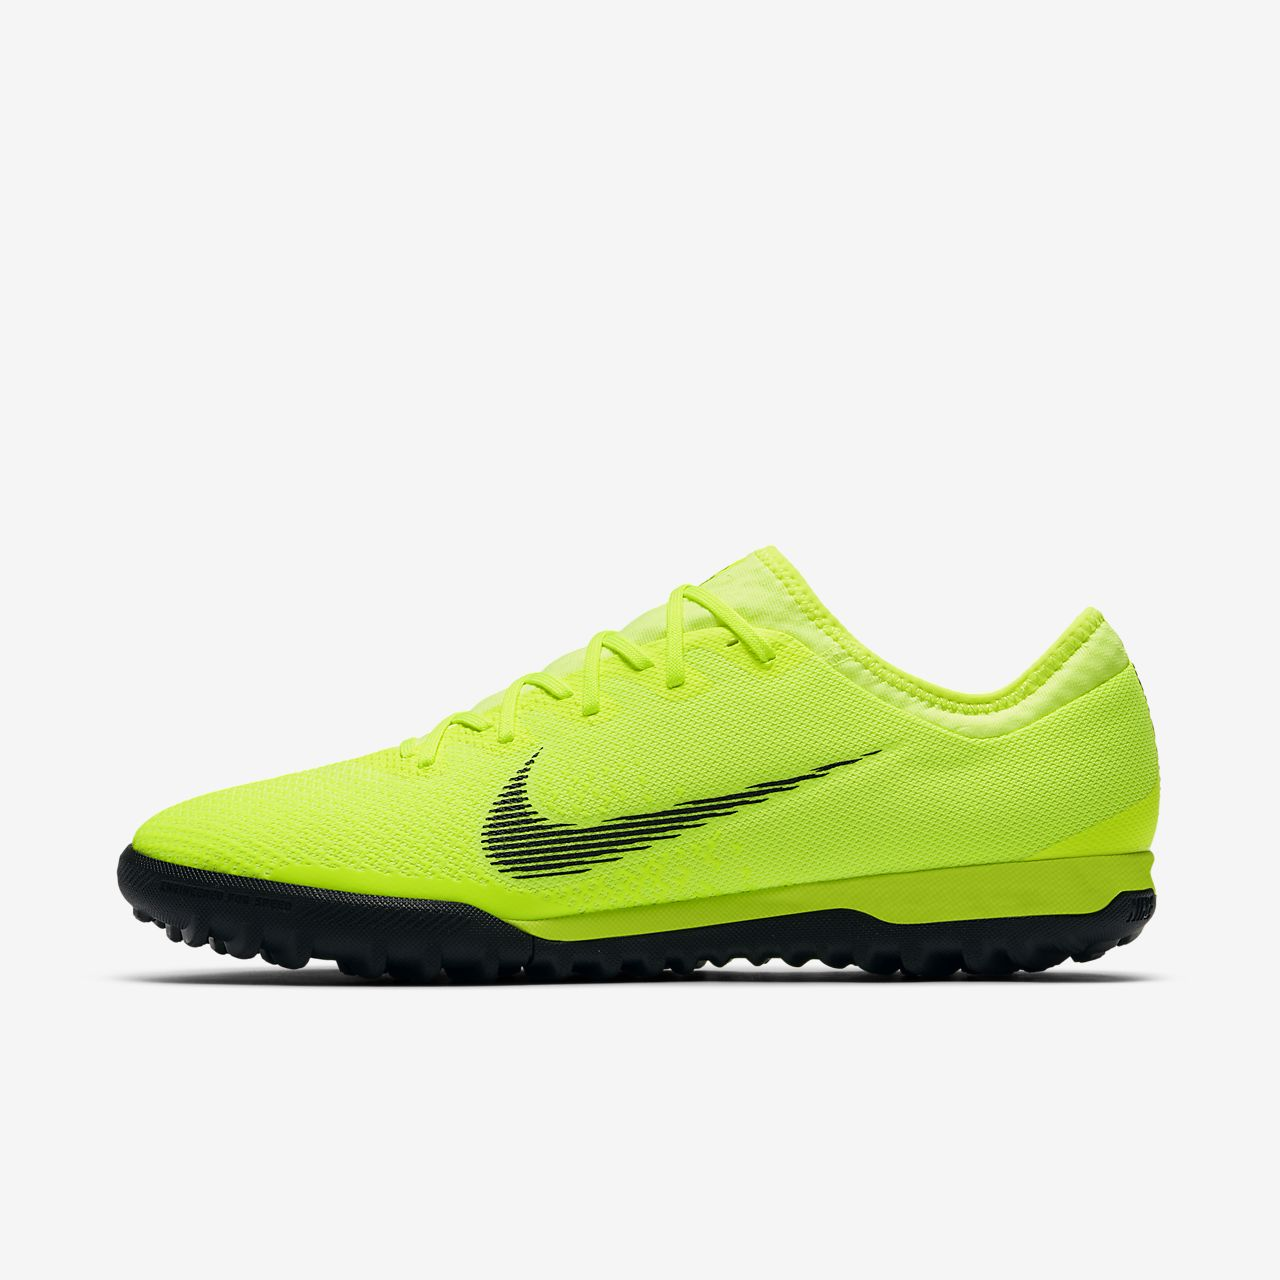 outlet store 71a20 6dfba ... Nike MercurialX Vapor XII Pro TF Turf Football Shoe